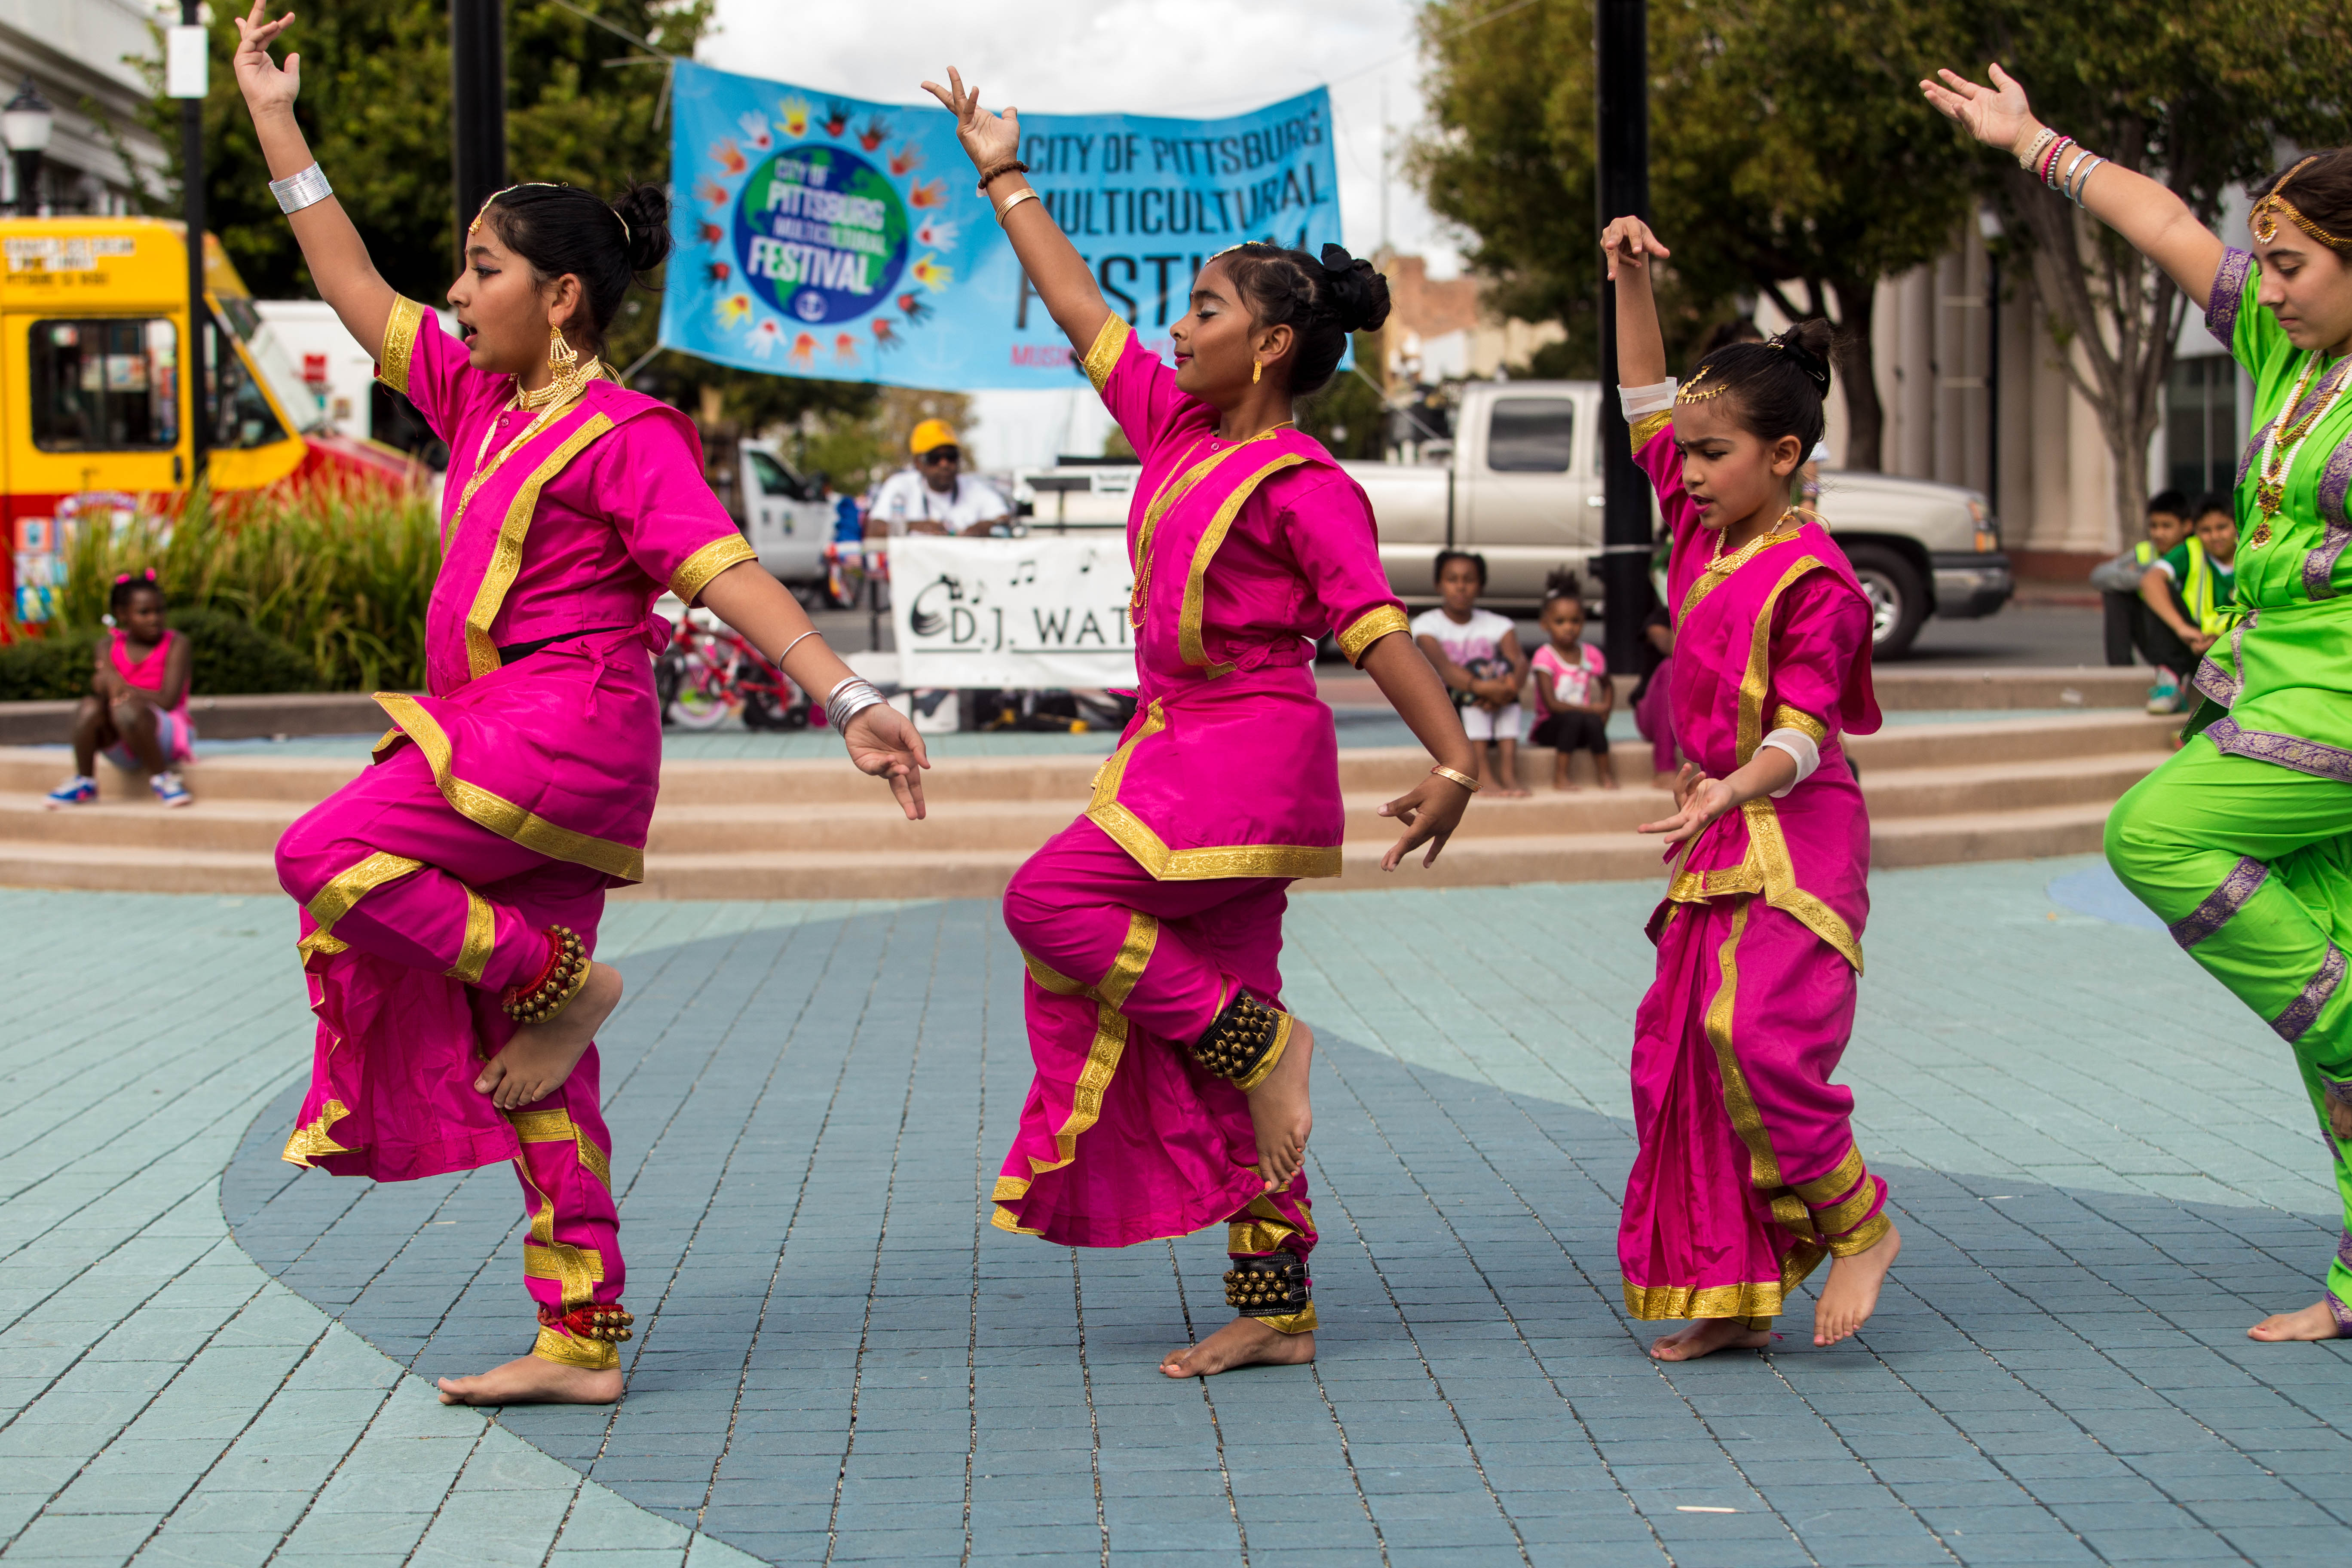 CITY_PITTSBURG_MULTICULTURAL_OCTOBER_2016 (573)